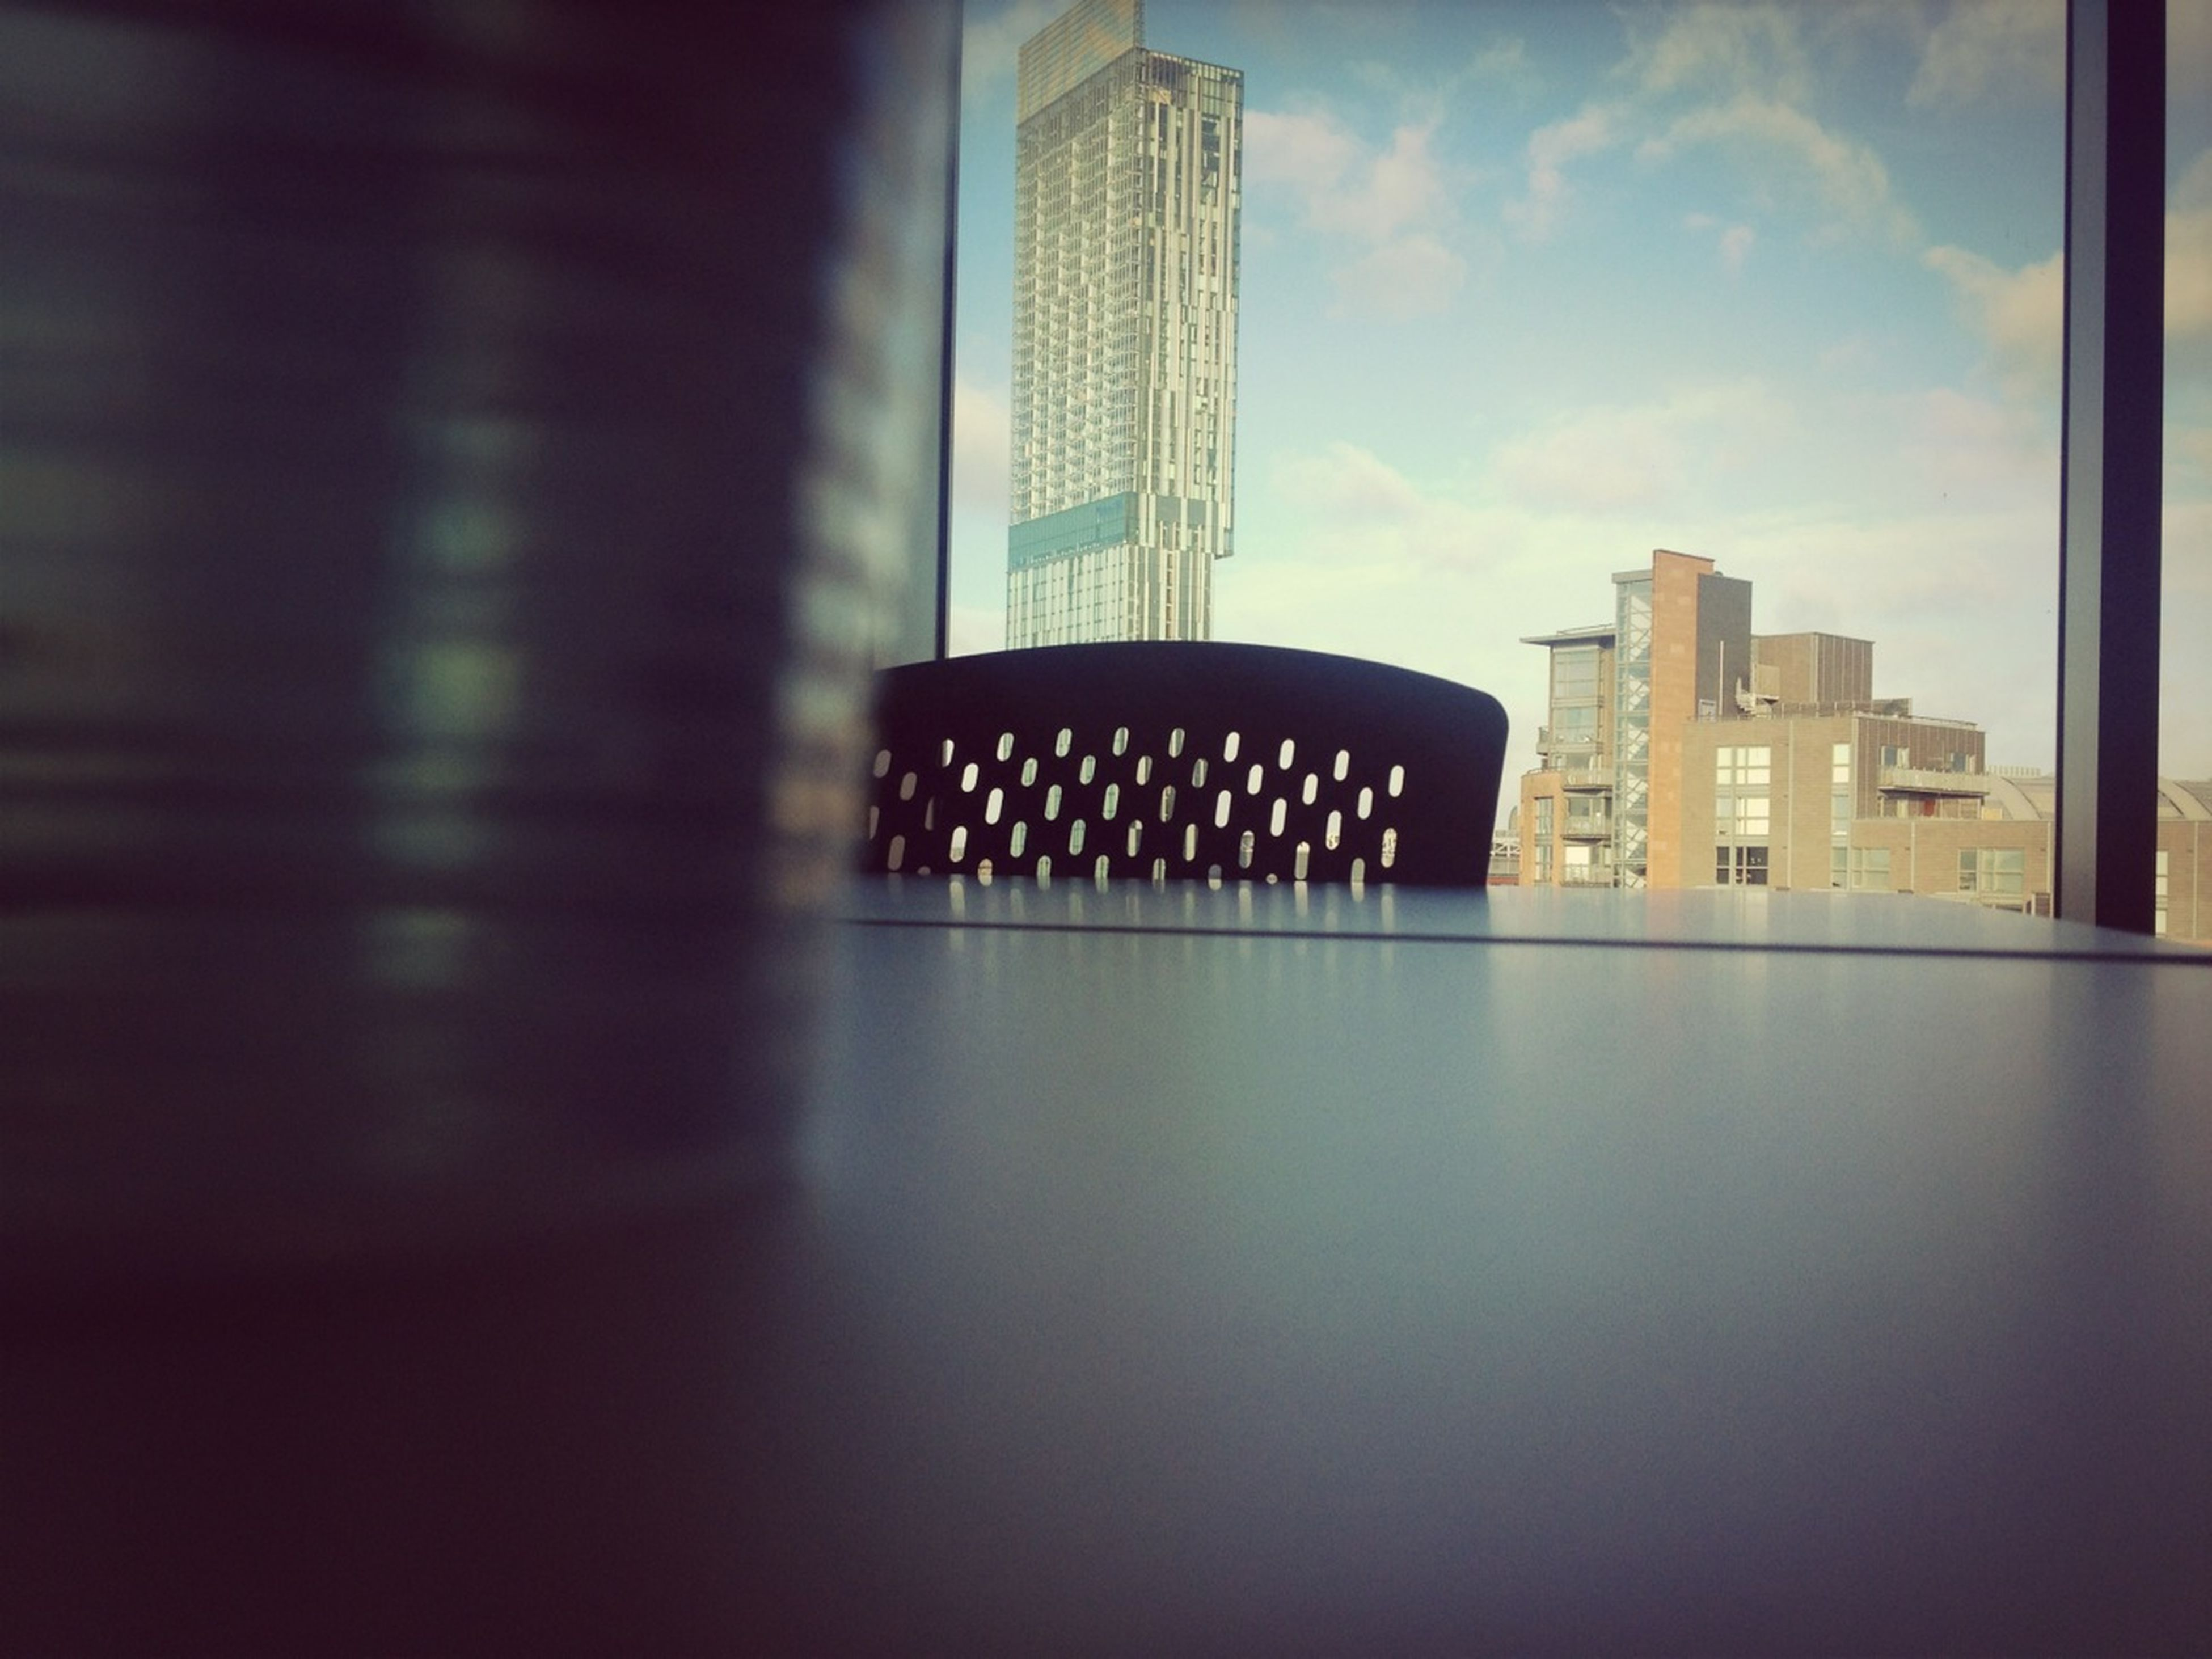 architecture, built structure, modern, building exterior, indoors, skyscraper, office building, city, tall - high, reflection, building, sky, no people, glass - material, tower, window, absence, low angle view, empty, day